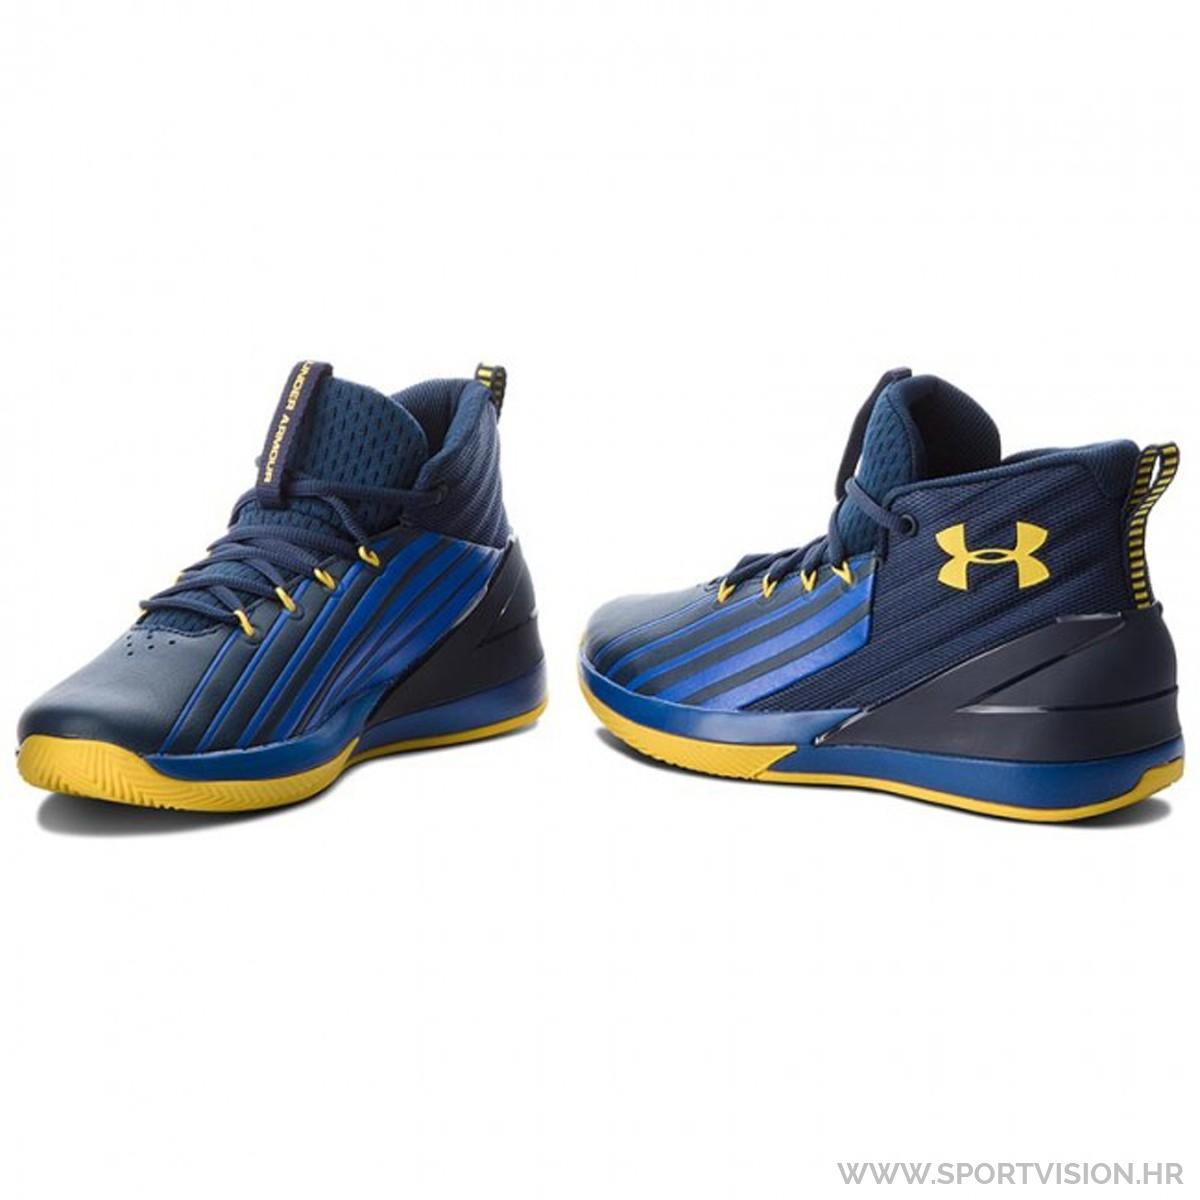 UNDER ARMOUR tenisice LAUNCH